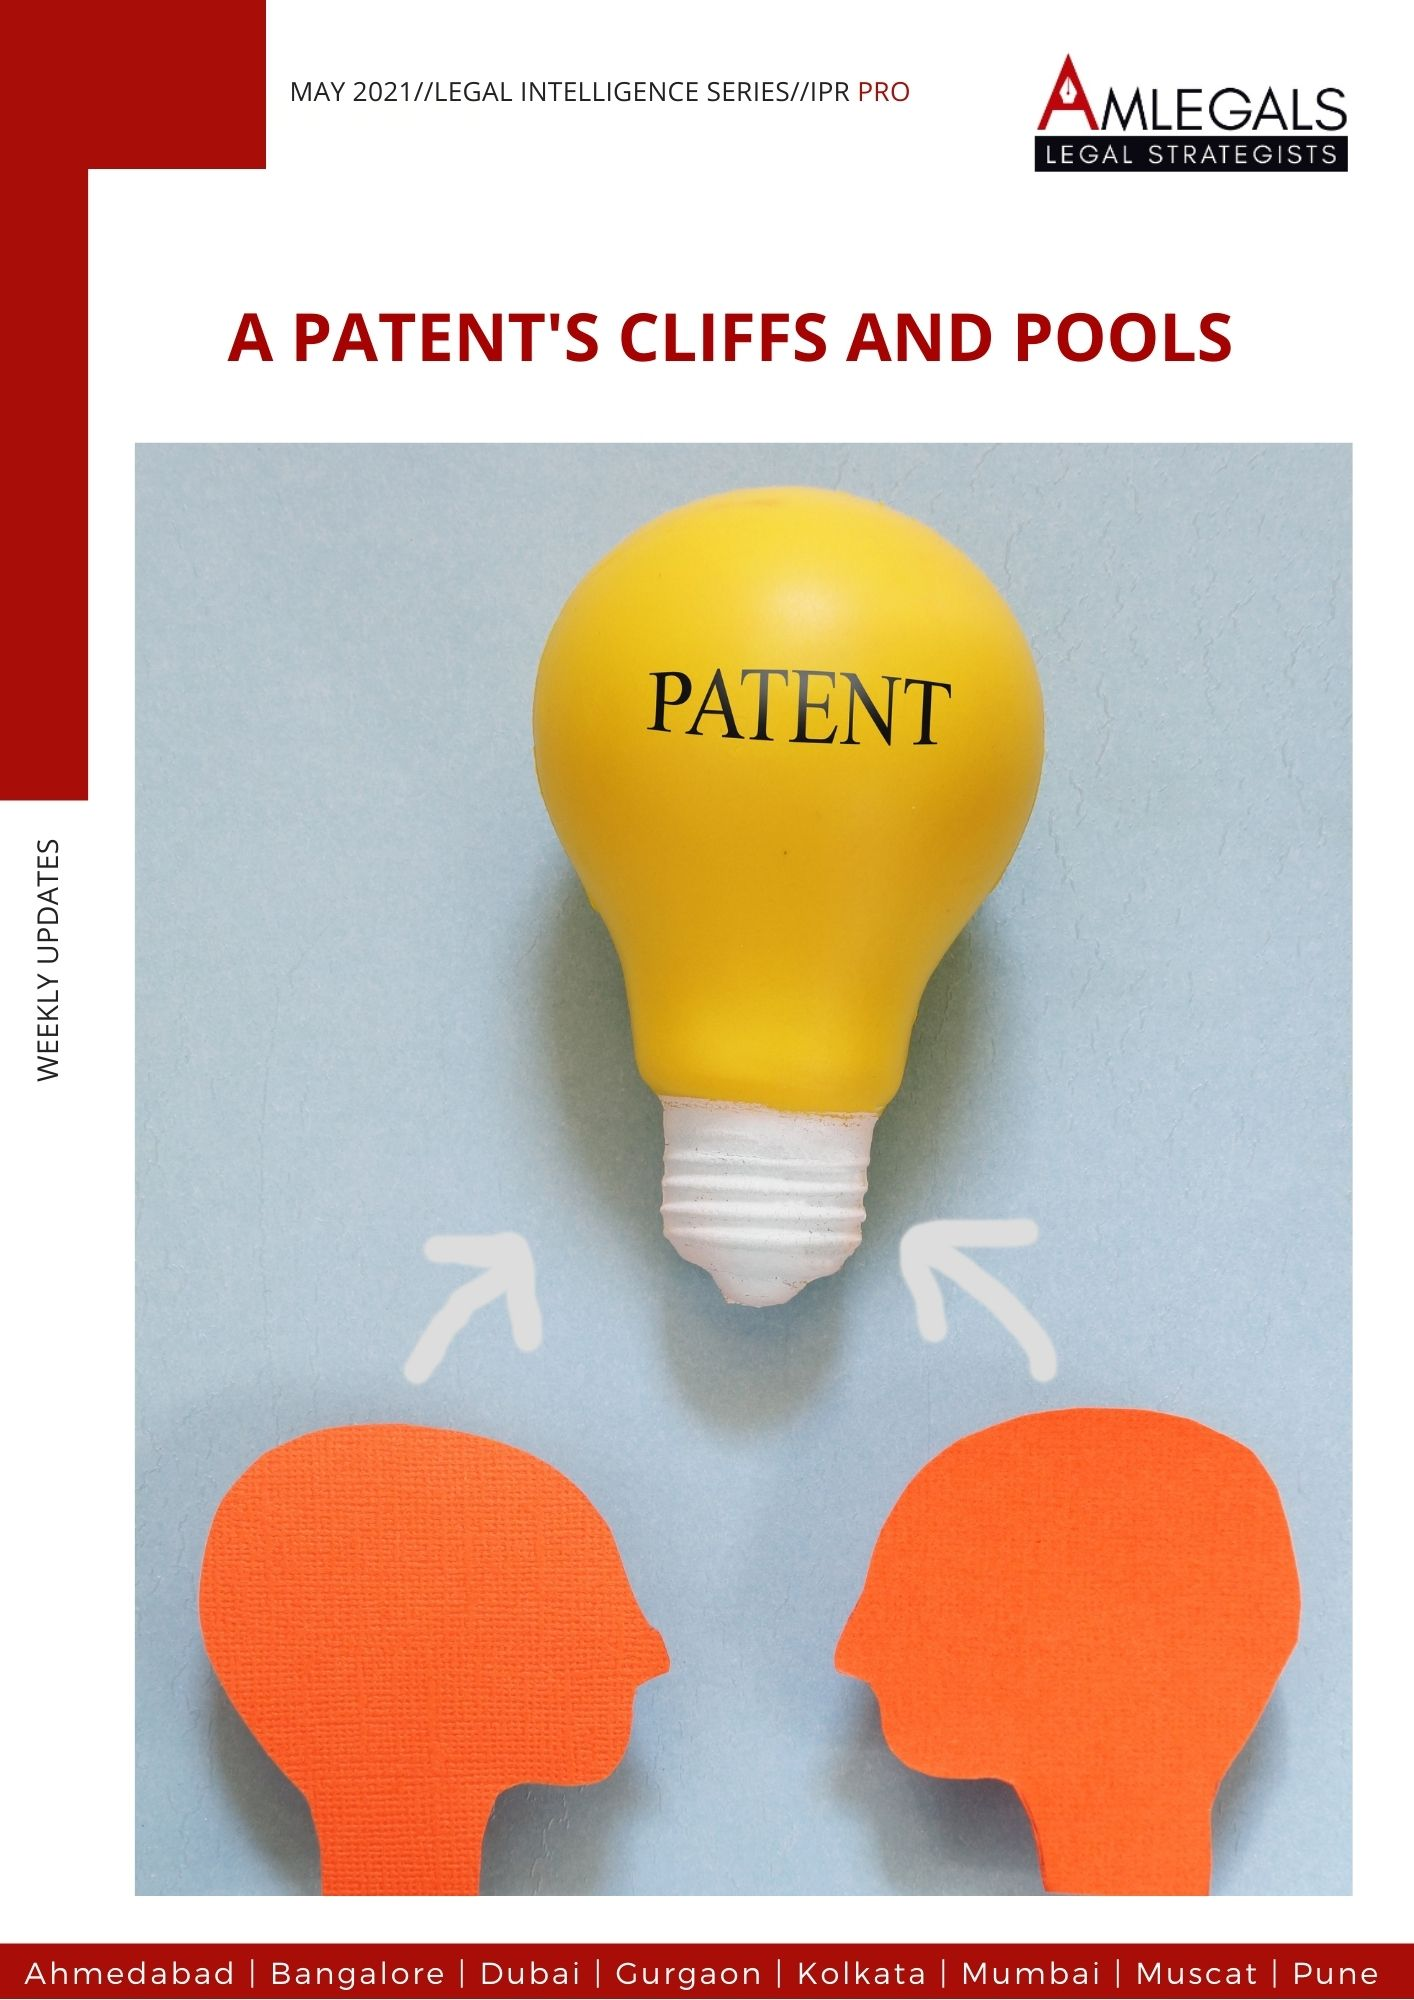 A Patent's cliffs and pools